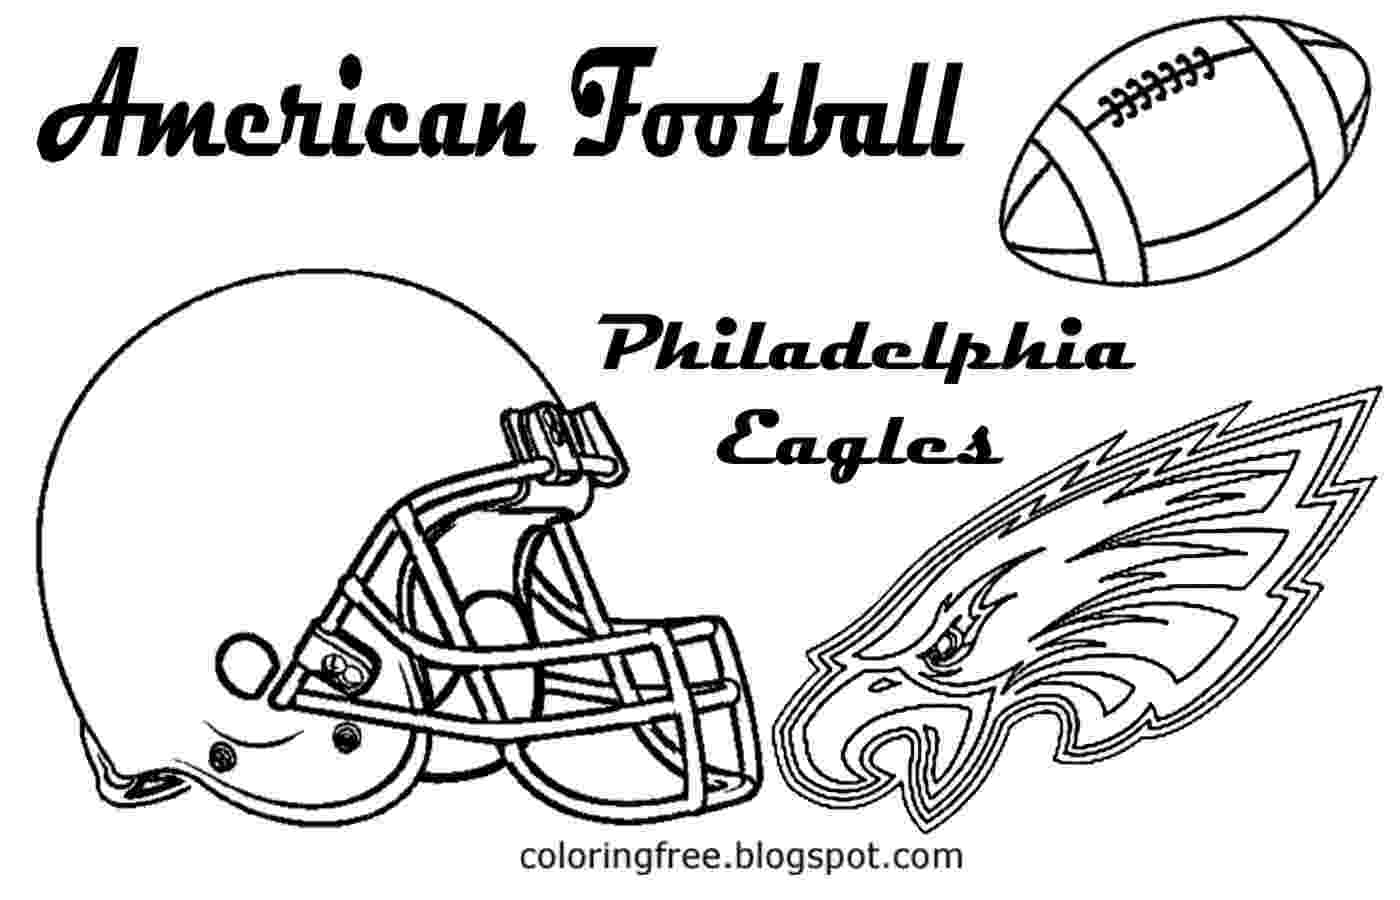 eagles football coloring pages free coloring pages printable pictures to color kids pages coloring football eagles